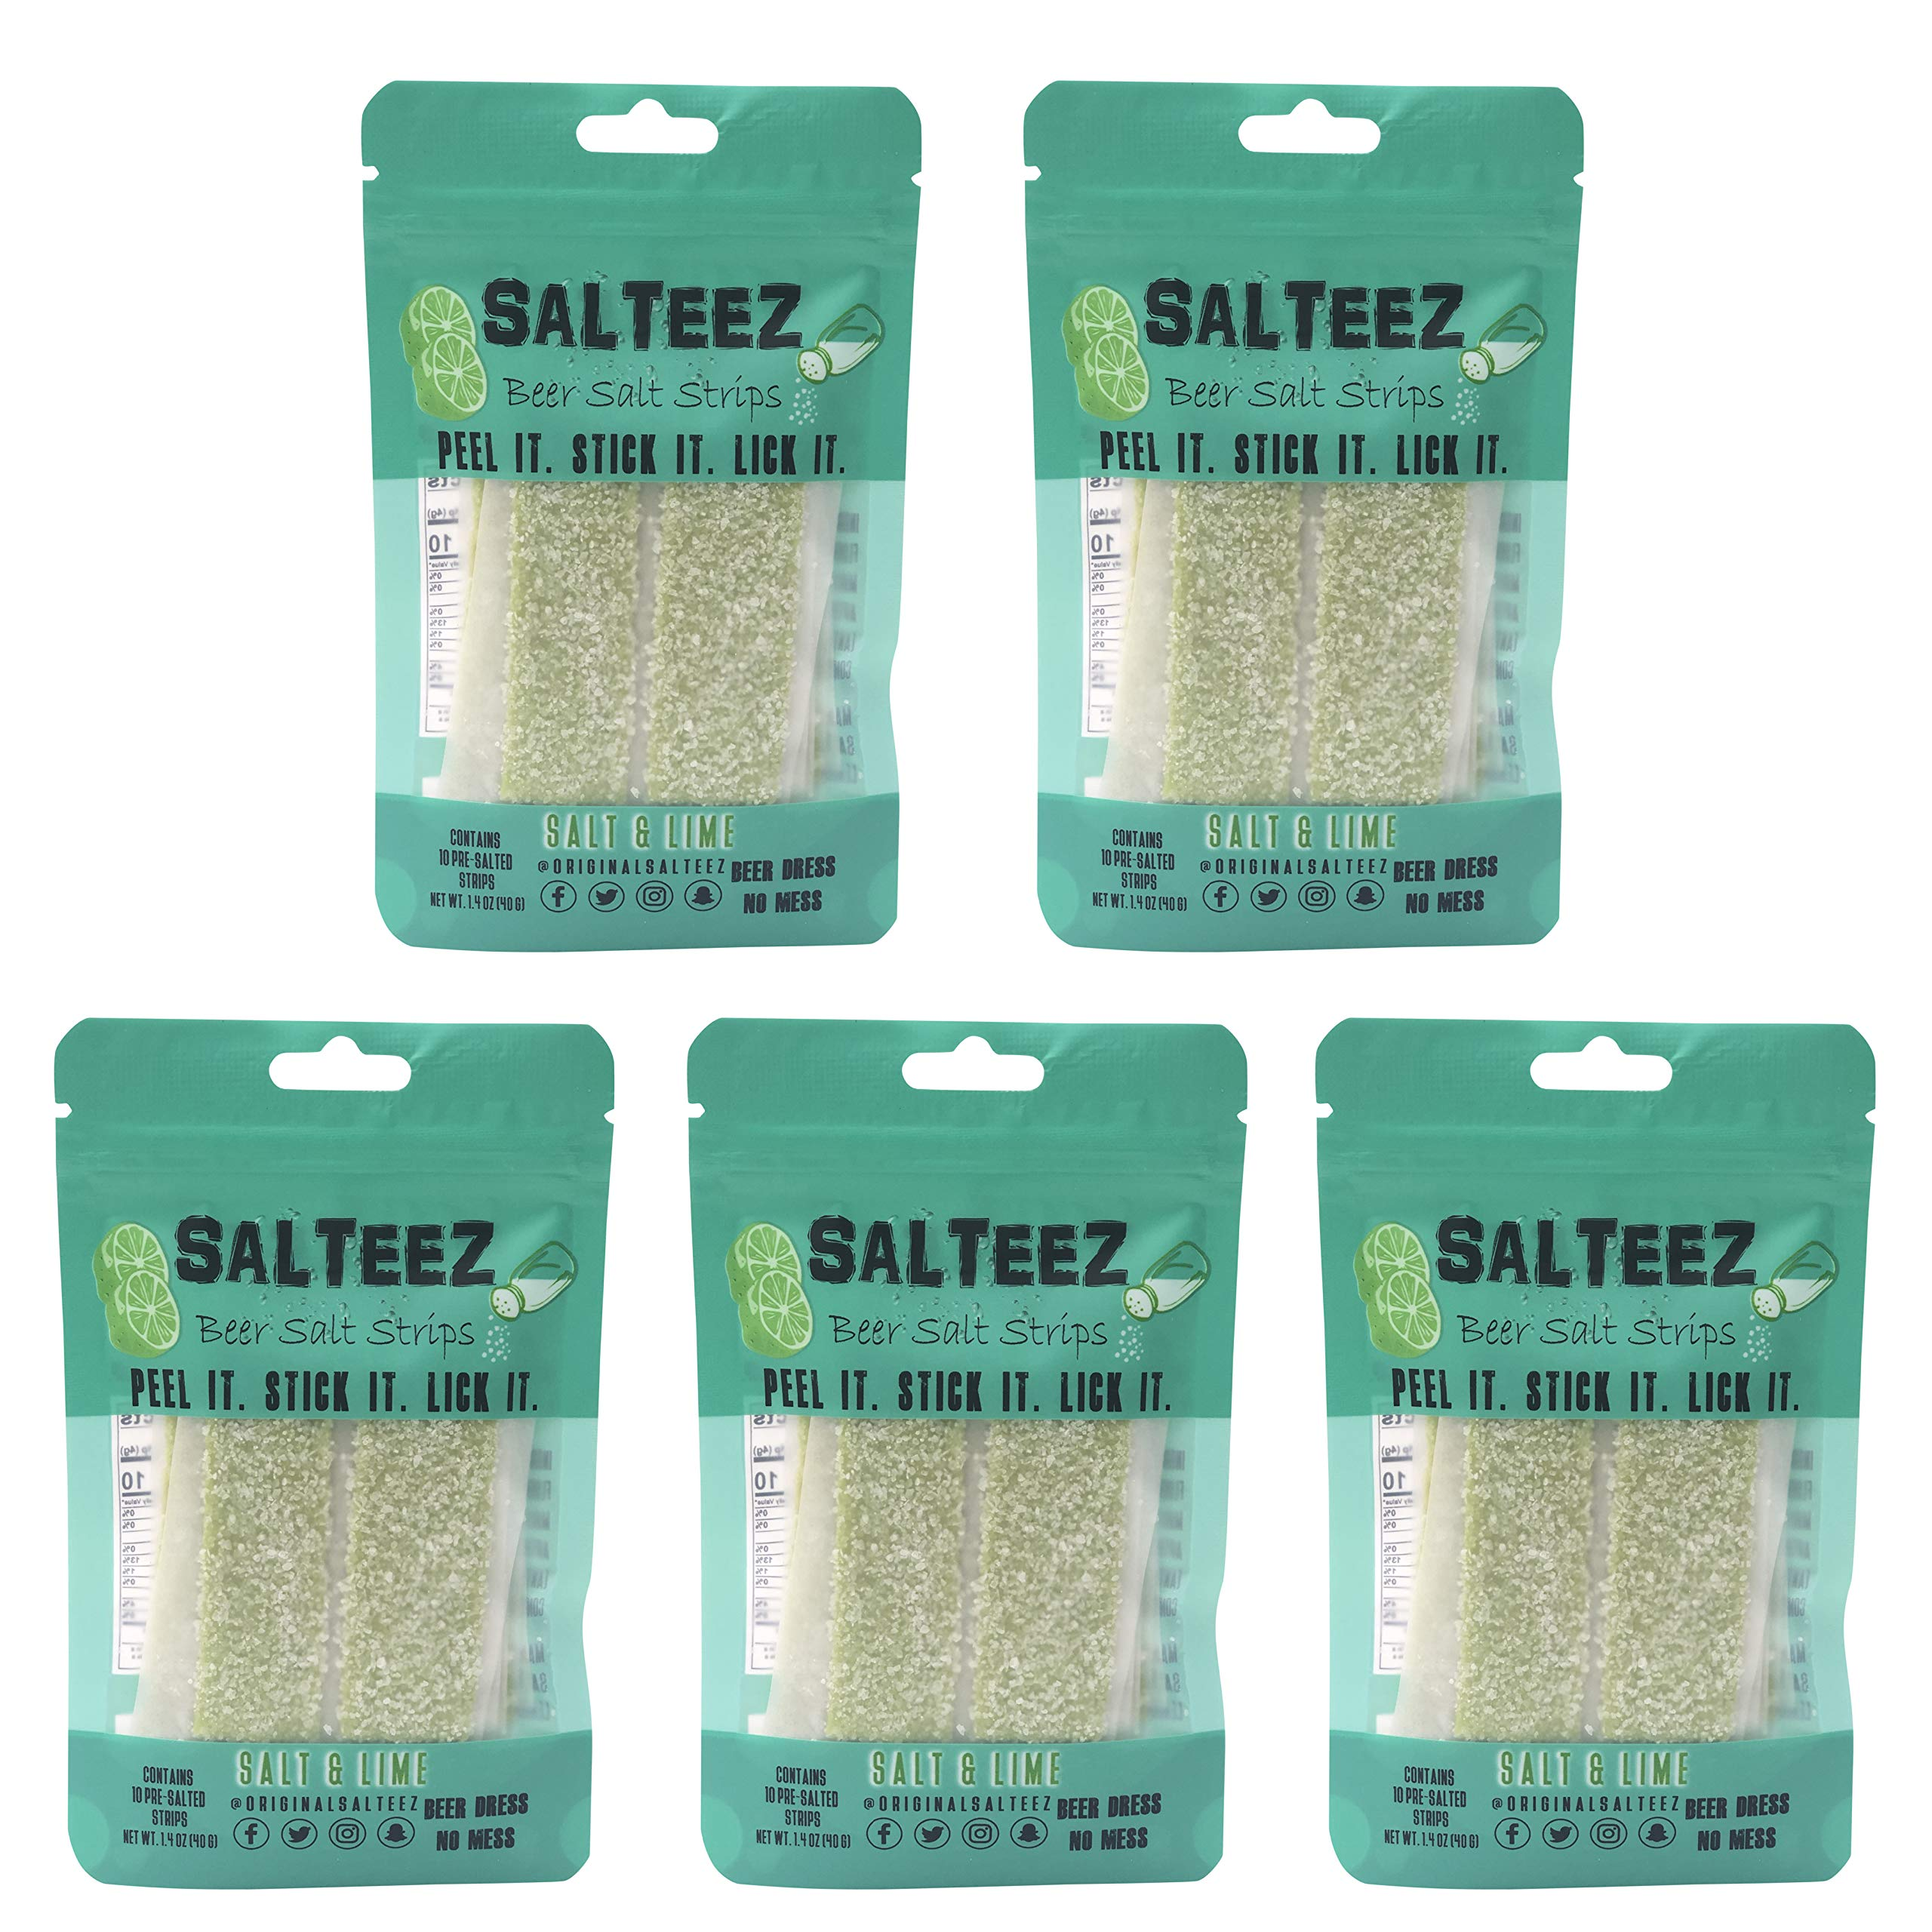 Salteez Beer Salt Strips - Real Salt & Lime Flavor Strips That Stick to Your Bottle, Can, or Cup - For a Perfectly Dressed Beer Anytime Anywhere! (Salt & Lime, 5 Pack) by Salteez